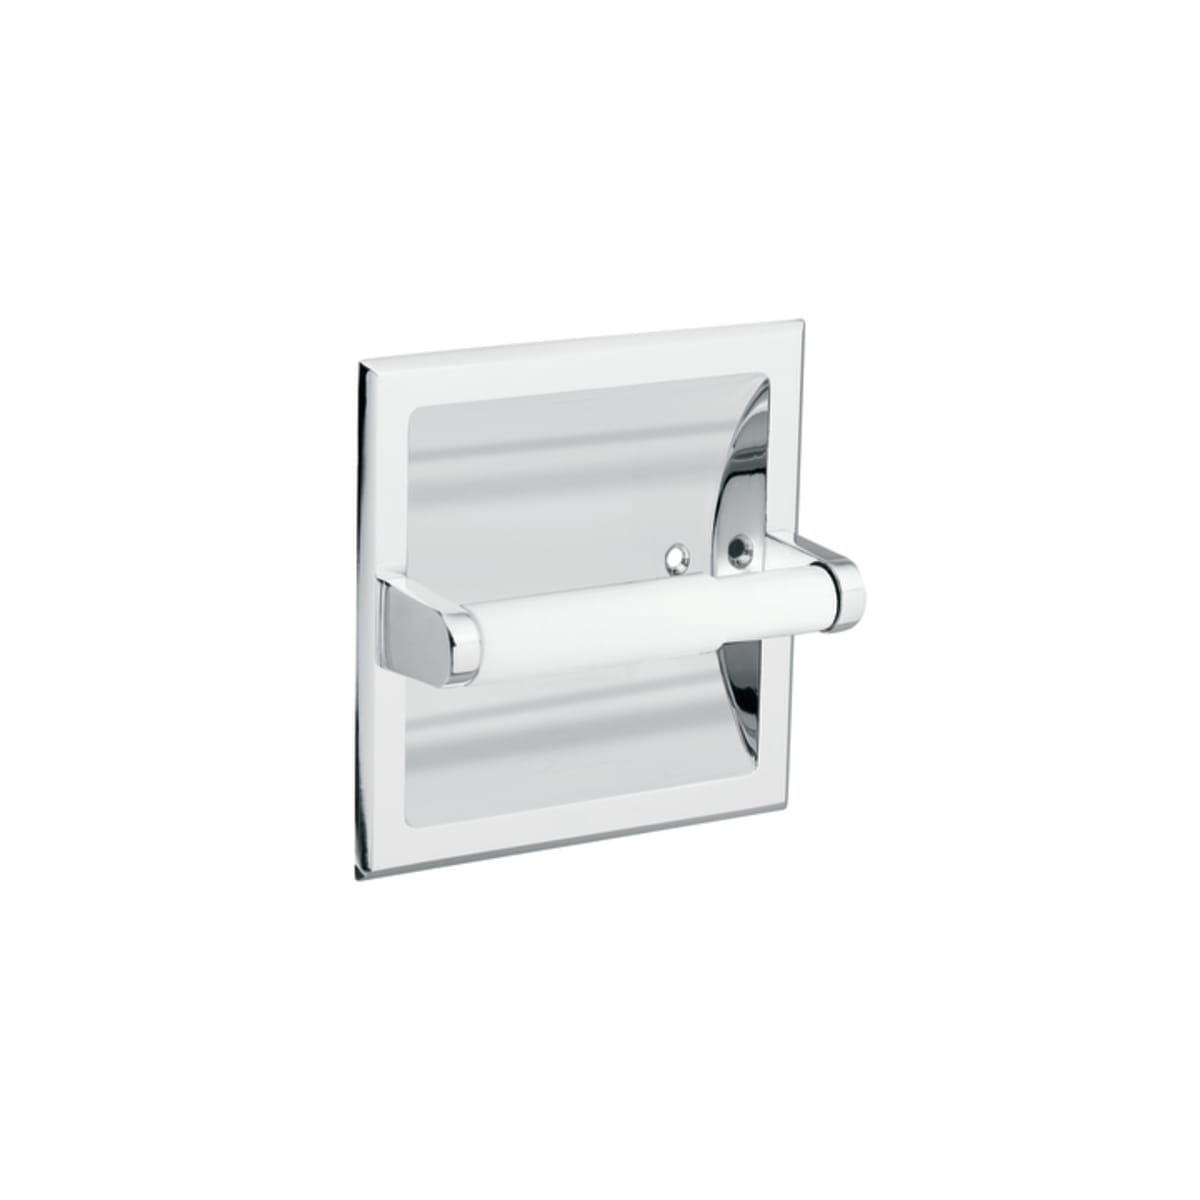 moen toilet paper holder replacement